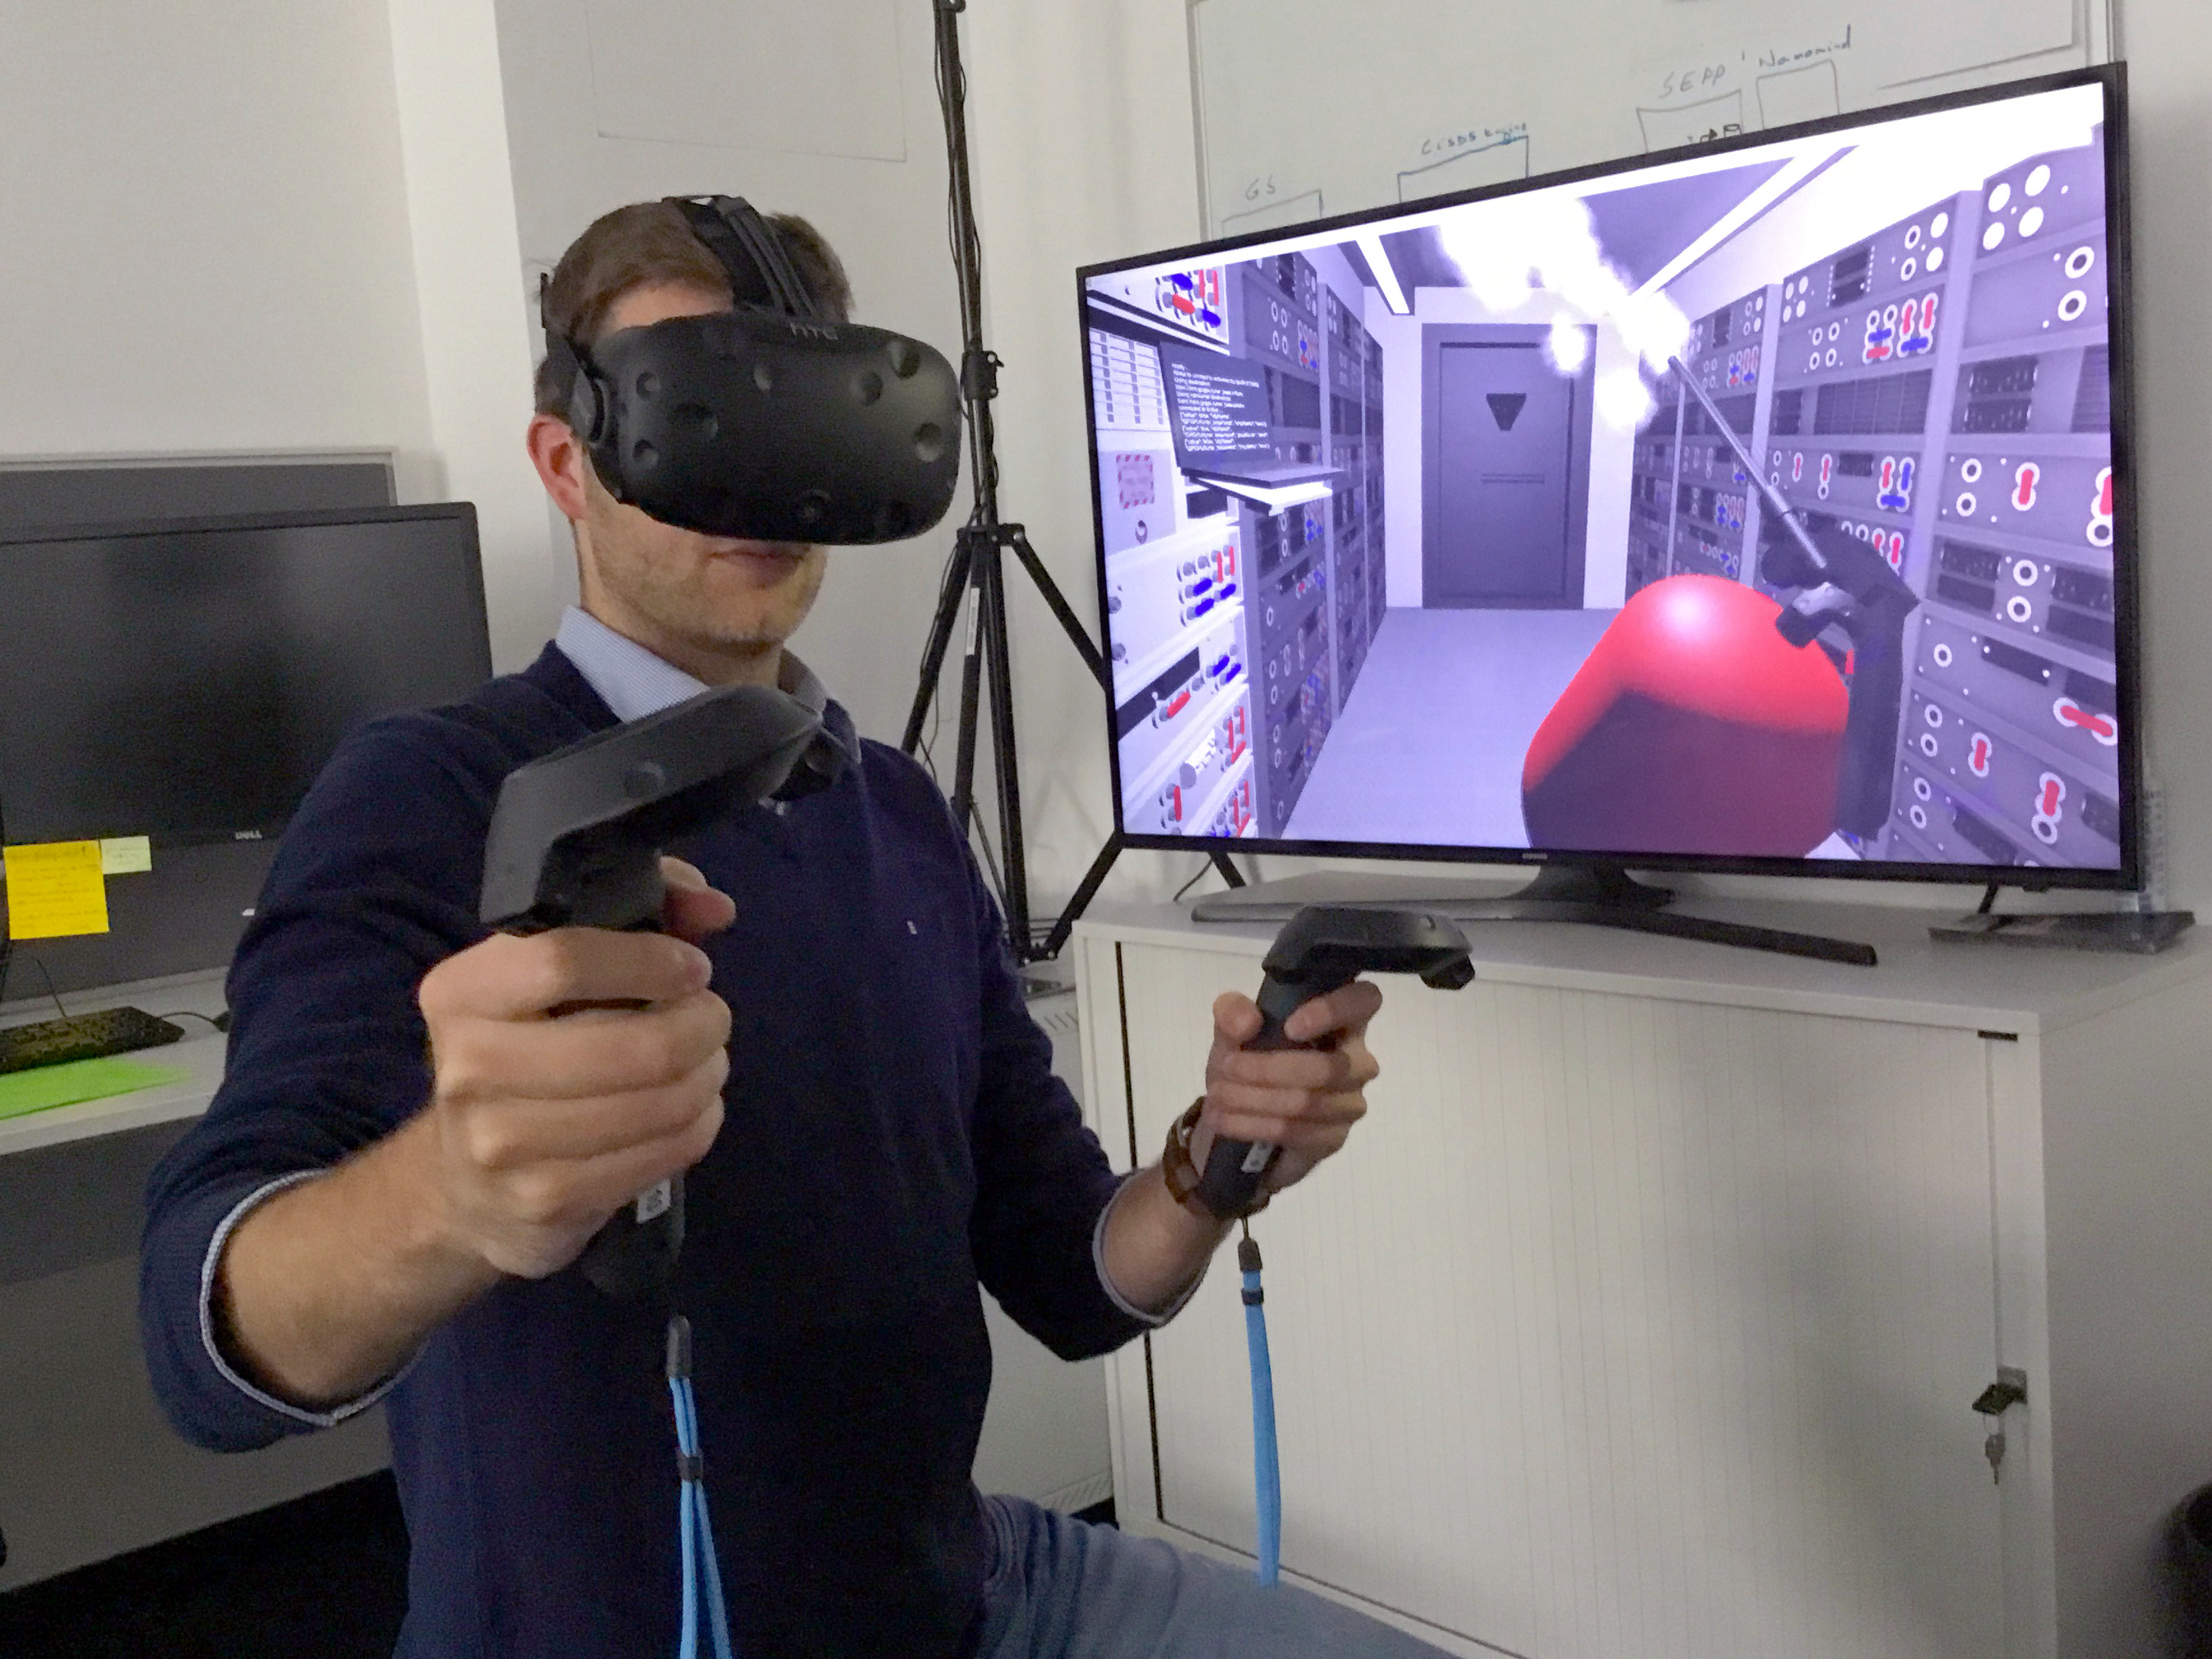 VR use in Construction